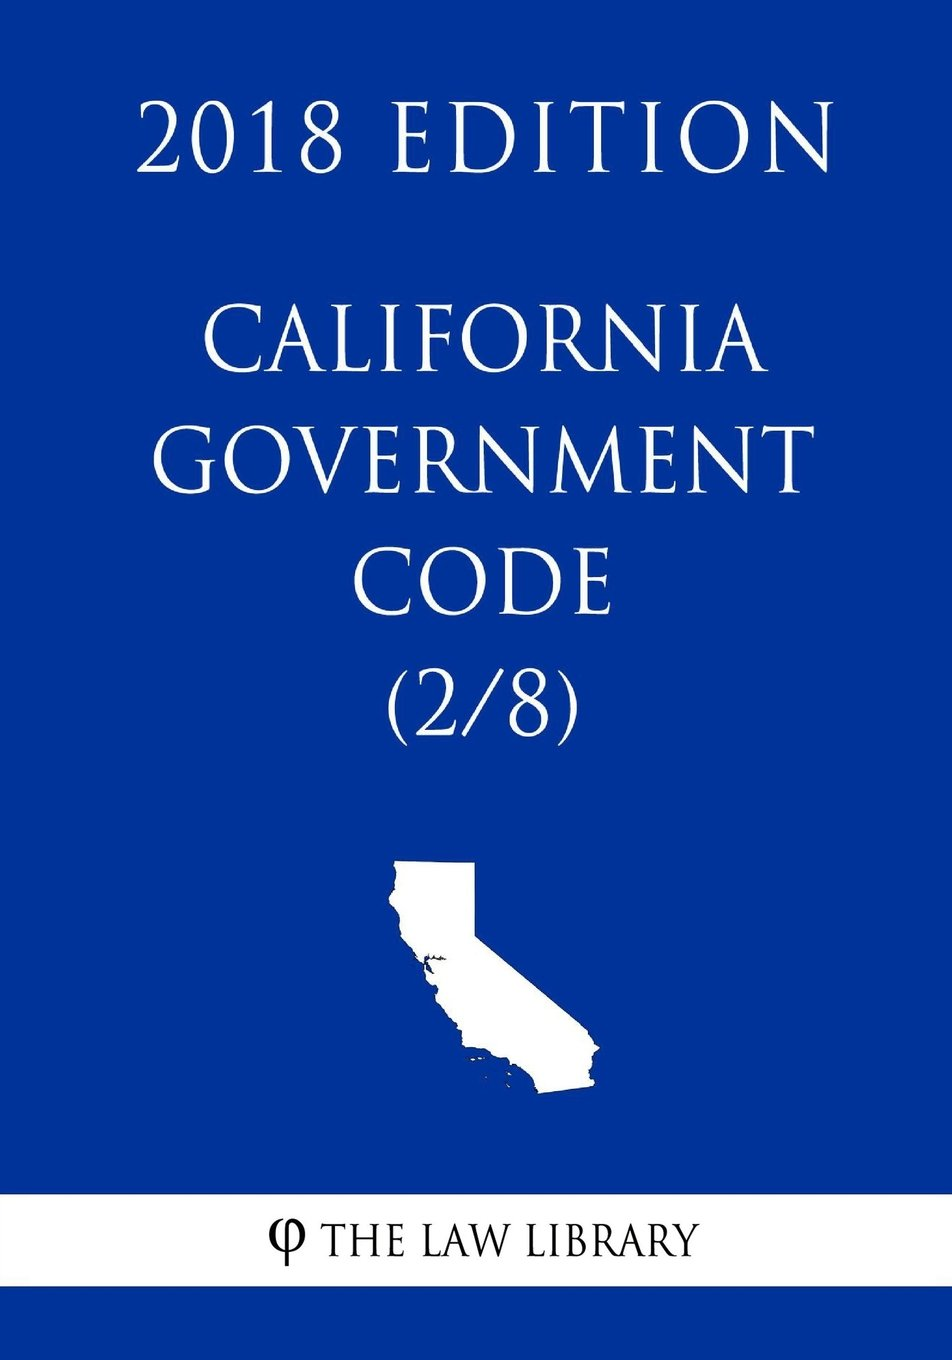 California Government Code (2/8) (2018 Edition) PDF ePub fb2 book